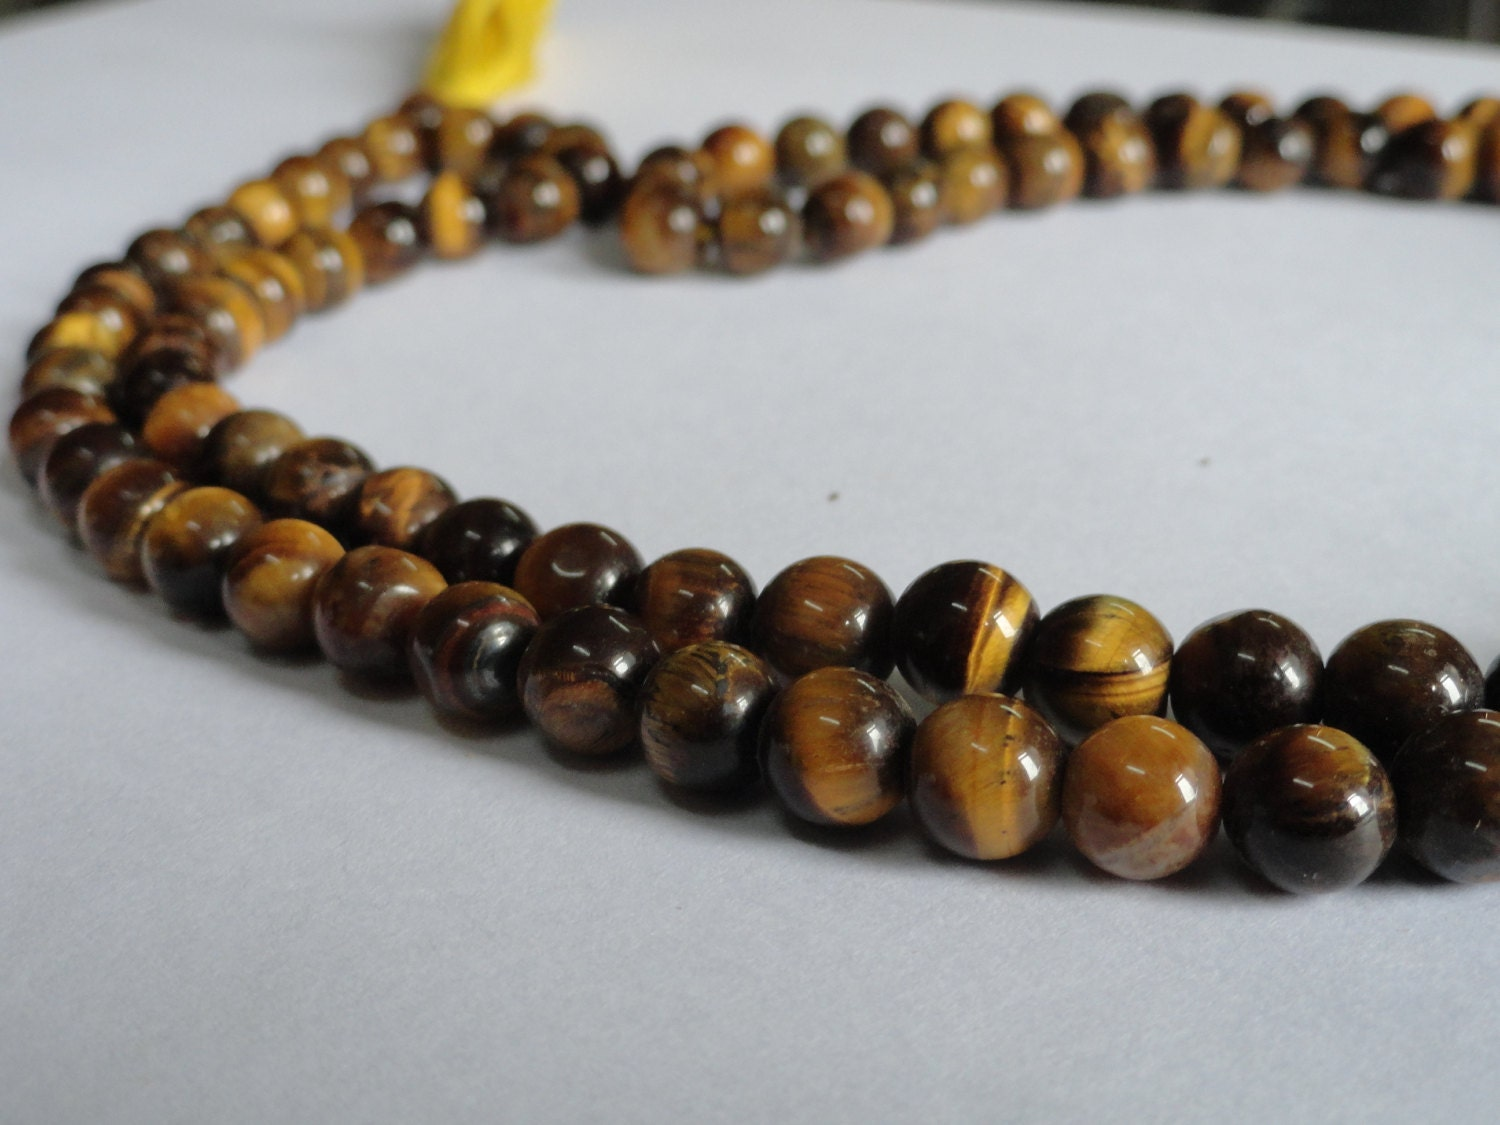 Beads Incrdible - Where Creativity never Ends